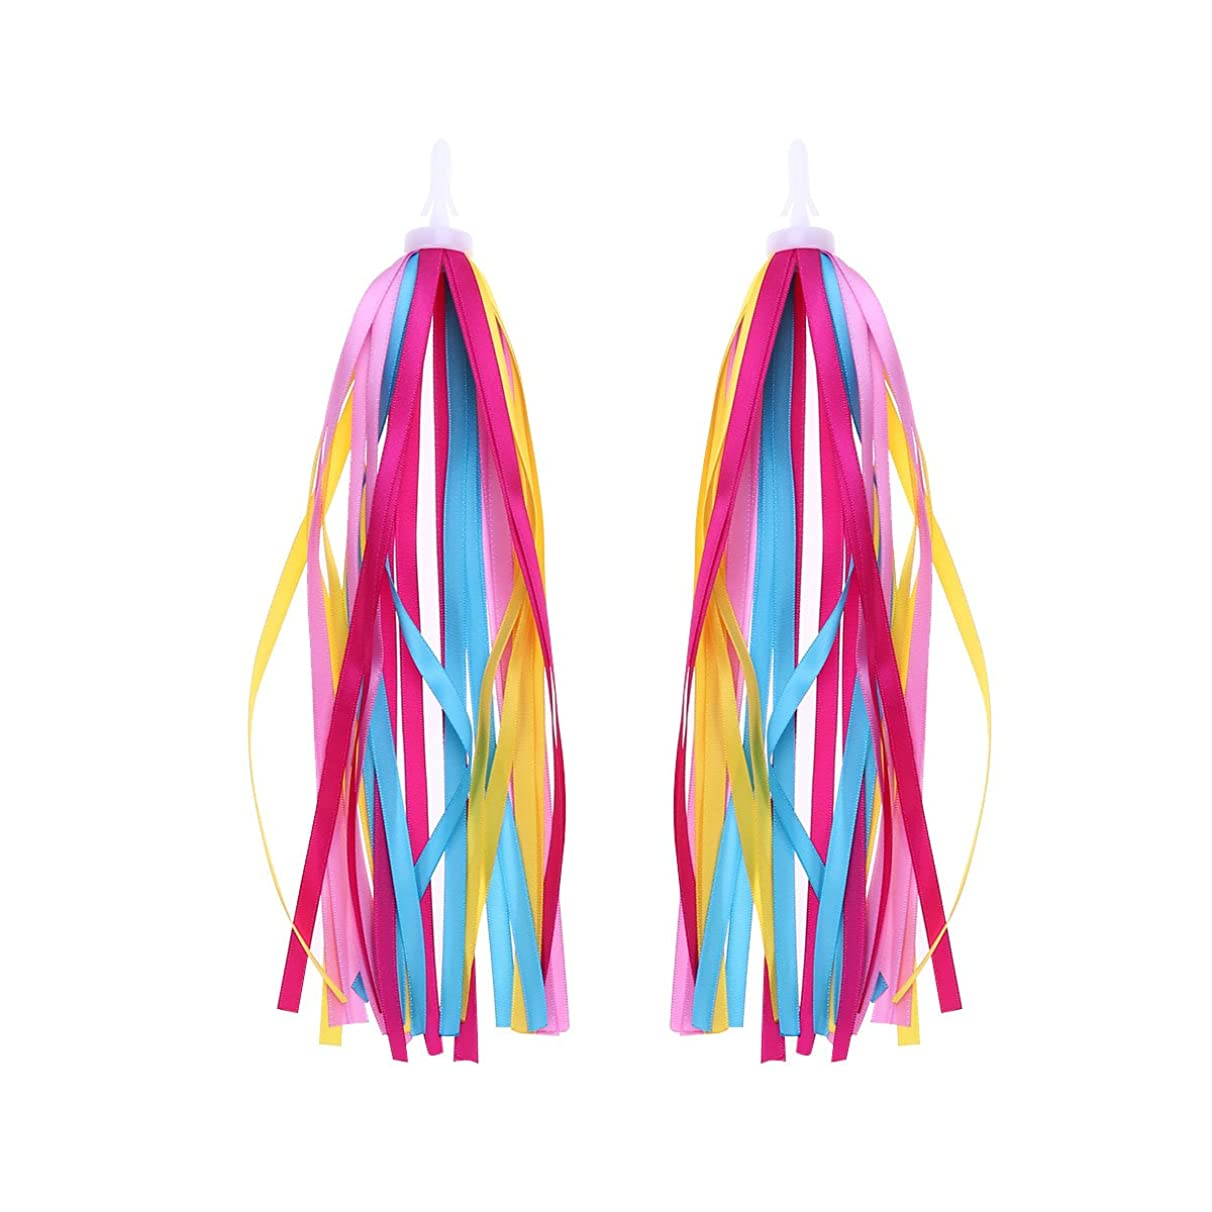 VORCOOL 1Pair Bike Handlebar Streamers Bicycle Grips Colorful Polyester Streamers Tassel Ribbons Children Baby Carrier Accessories